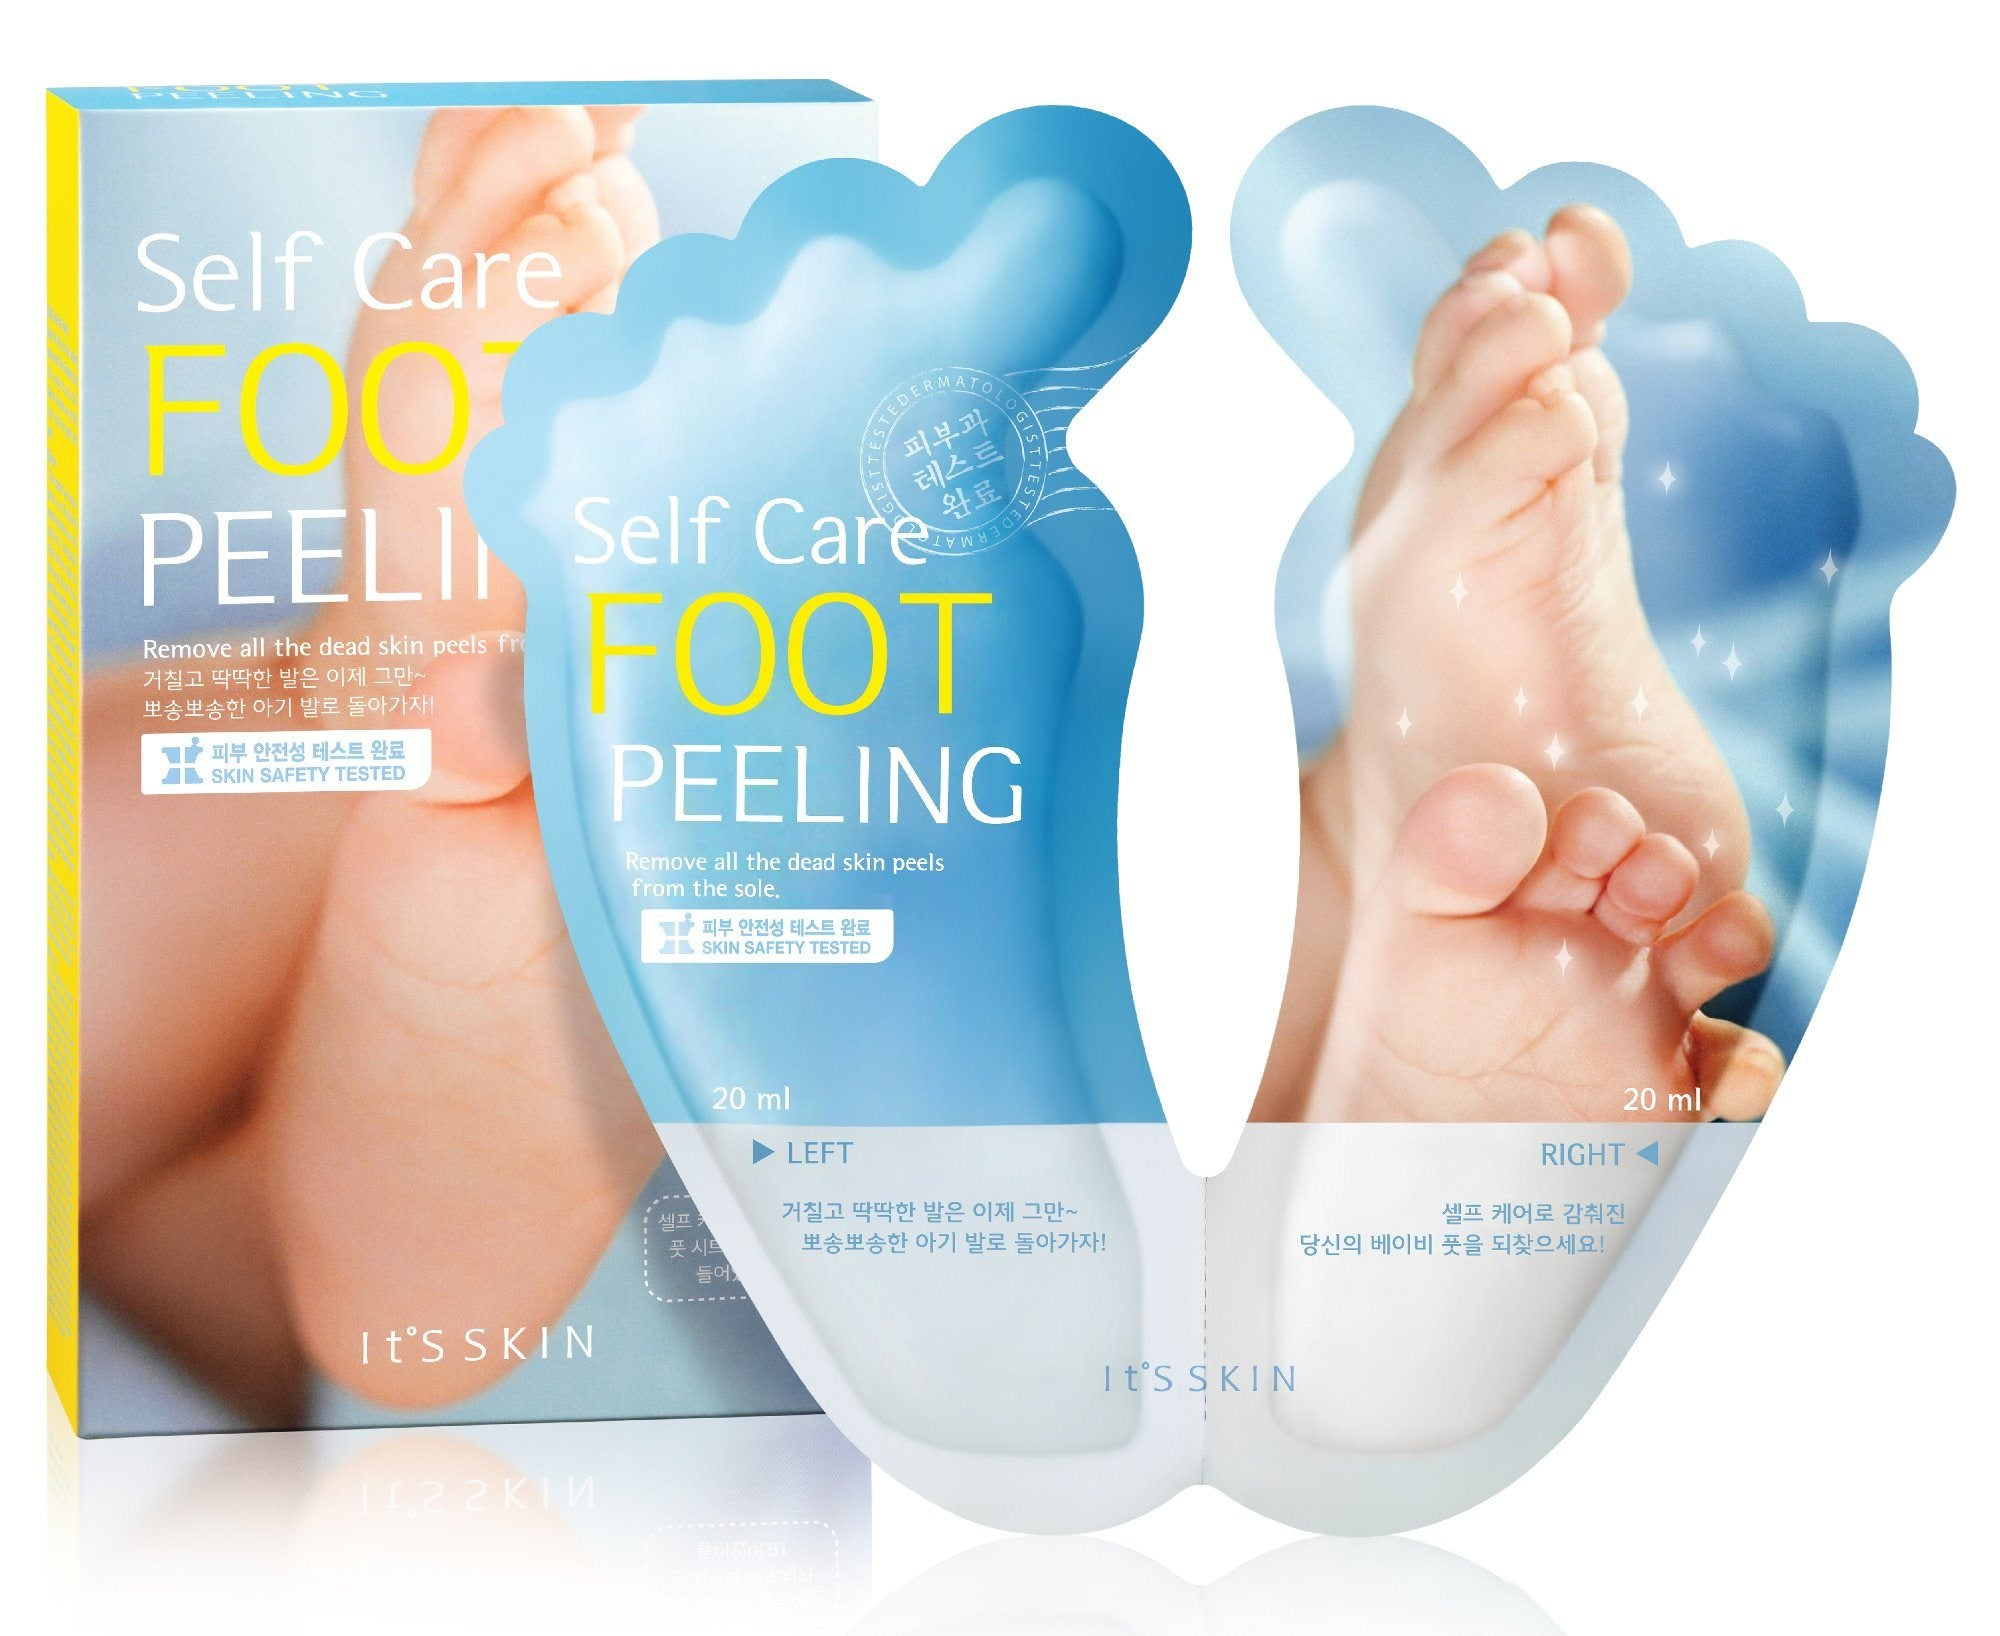 Health & Beauty > Personal Care > Cosmetics > Skin Care > Skin Care Masks & Peels - Self Care Foot Peeling Do Stóp